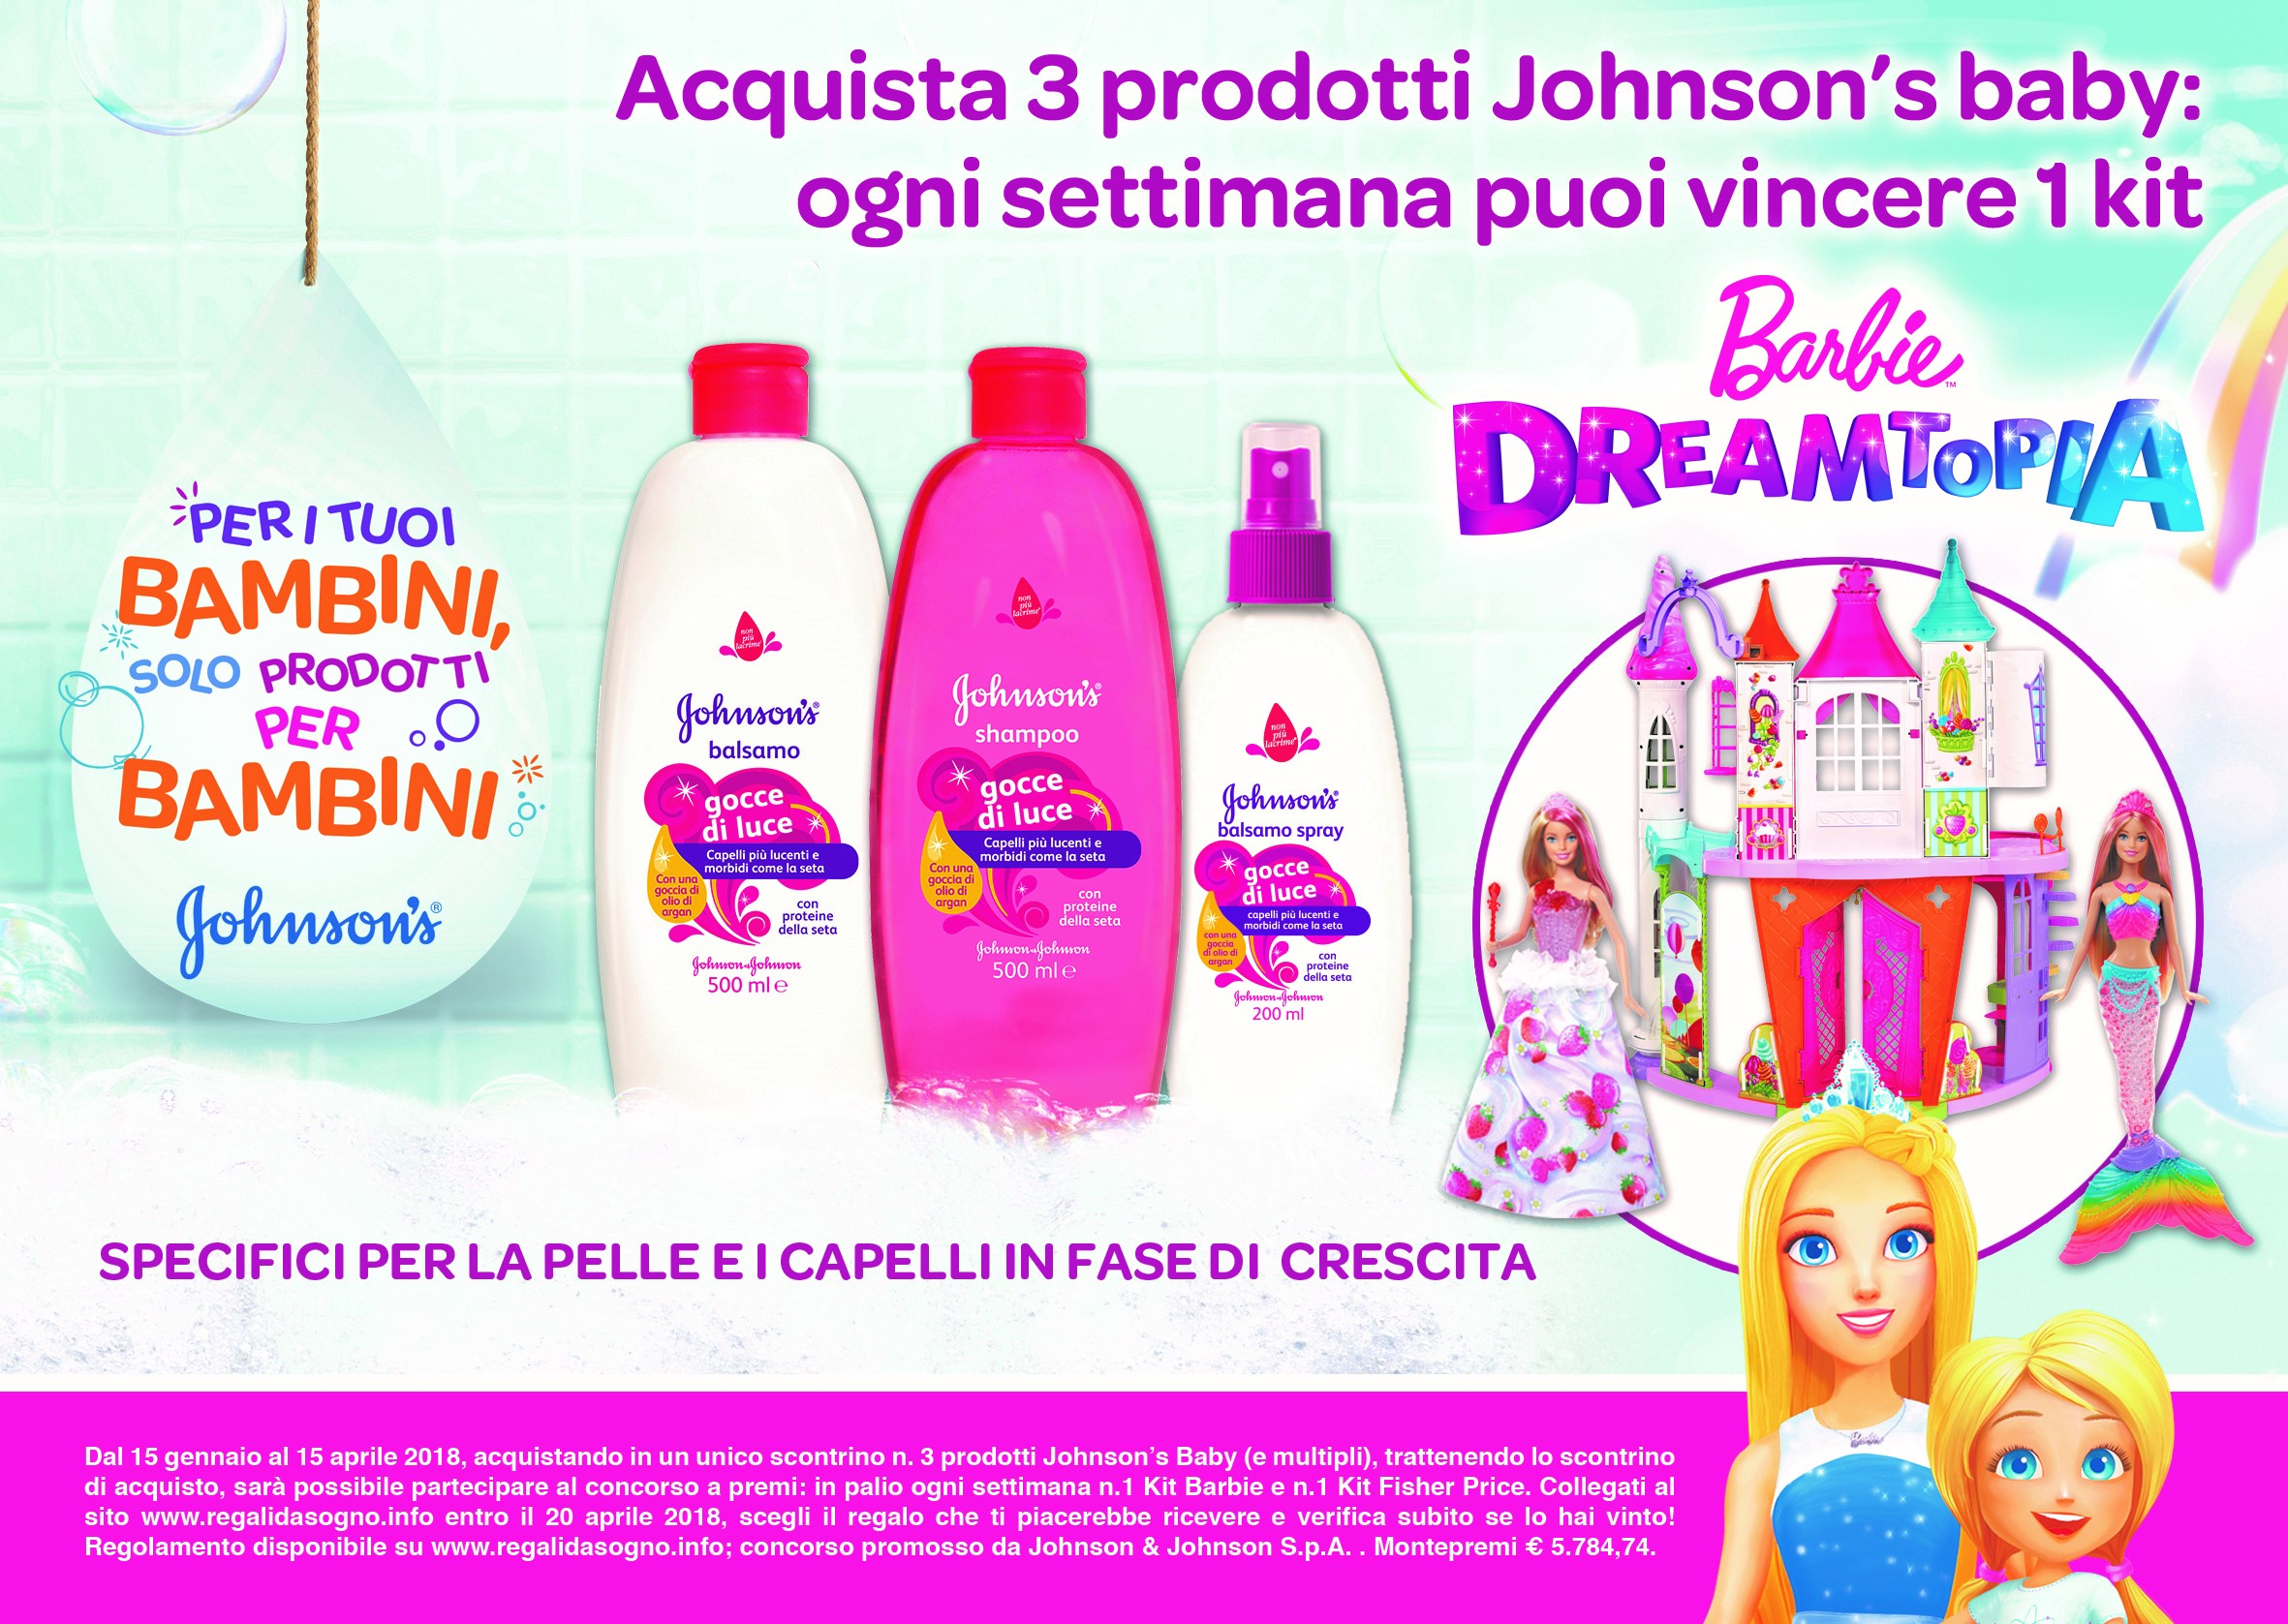 Vinci Barbie Dreamtopia con i prodotti Johnson's Baby